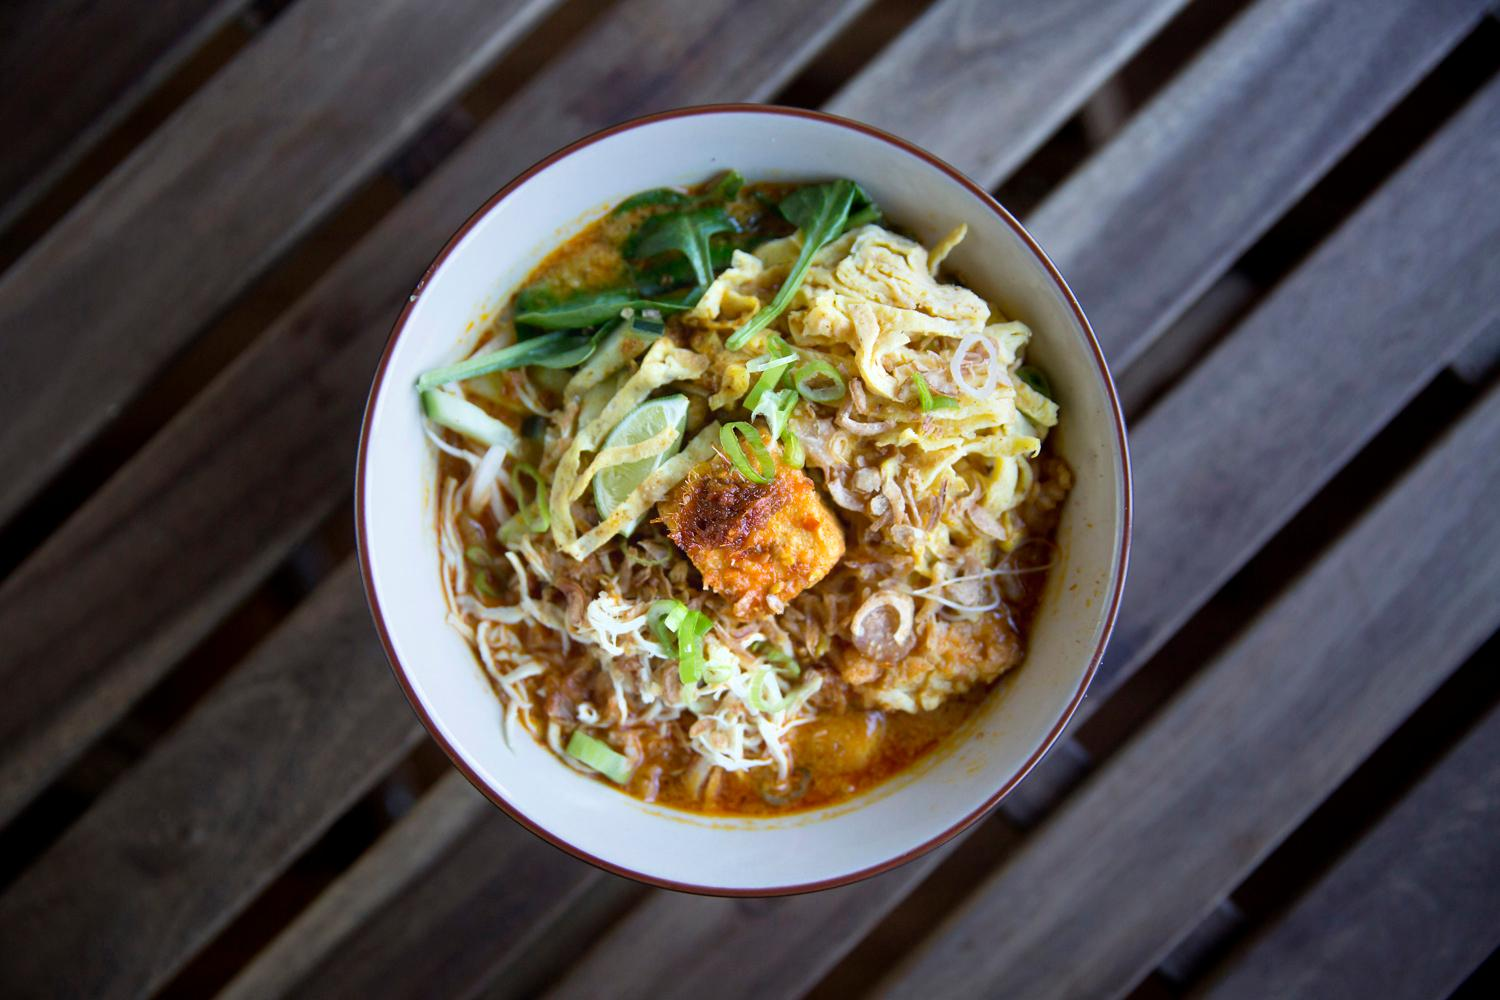 Nyonya Laksa - noodles in creamy coconut milk curry-like gravy with Manila clam, jumbo shripms, tofu puffs, organic hard-boiled eggs, sprinkled with cucumber and Daun Kesum, at Reunion Malaysian Cafe & Kitchen, located at 339 Kirkland Ave C, in Kirkland. (Sy Bean / Seattle Refined)